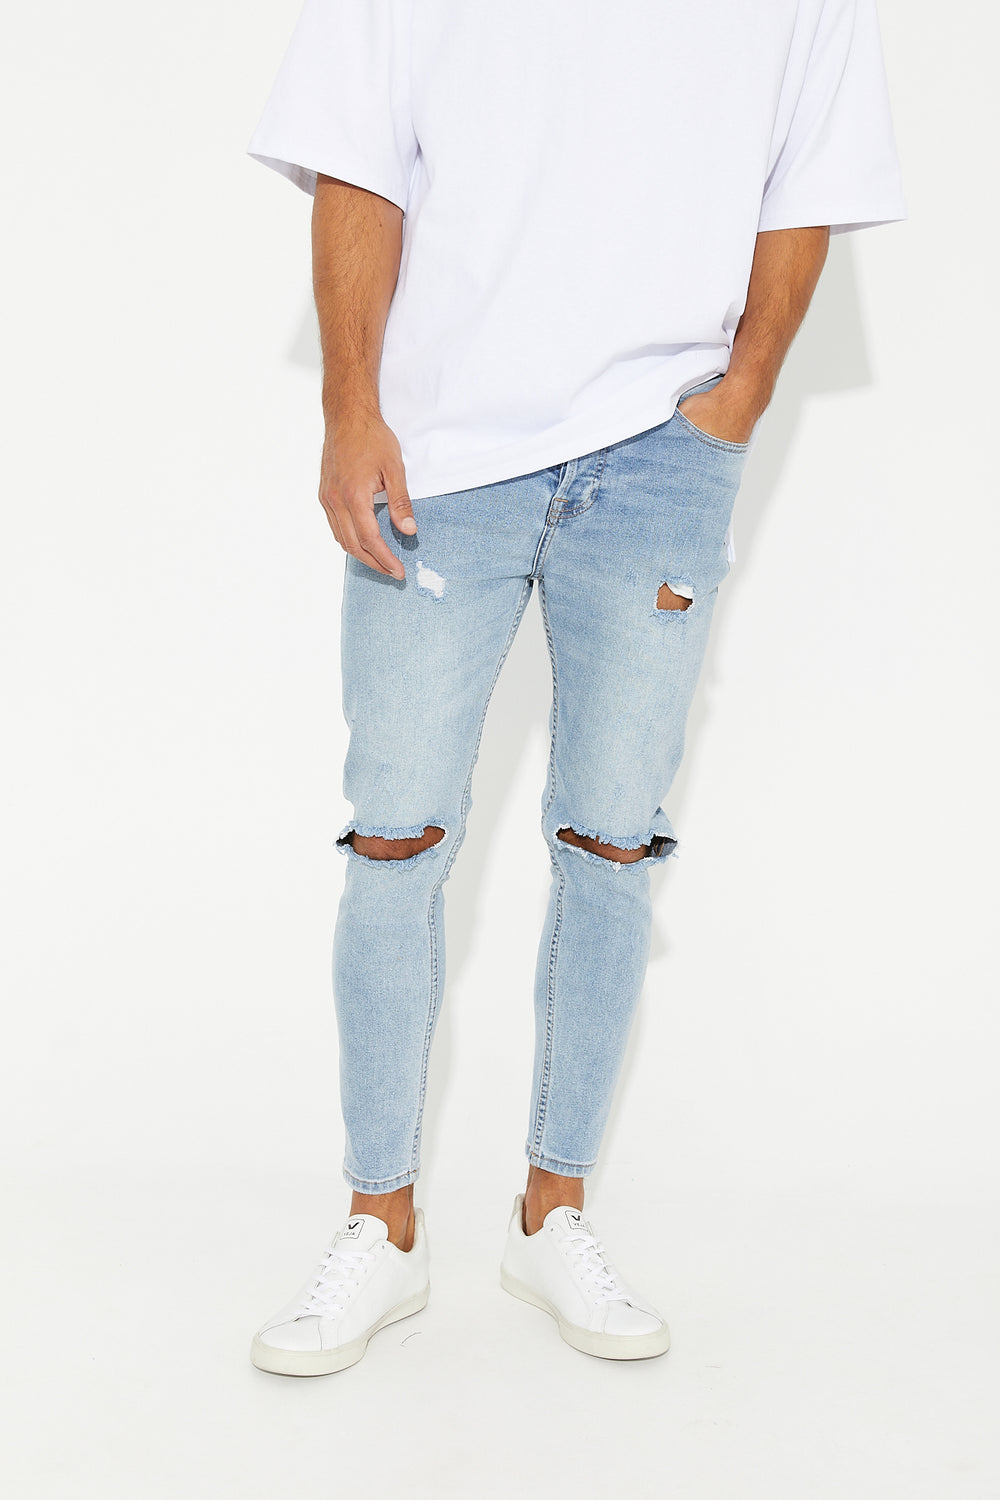 Nth Distressed Denim Light Blue